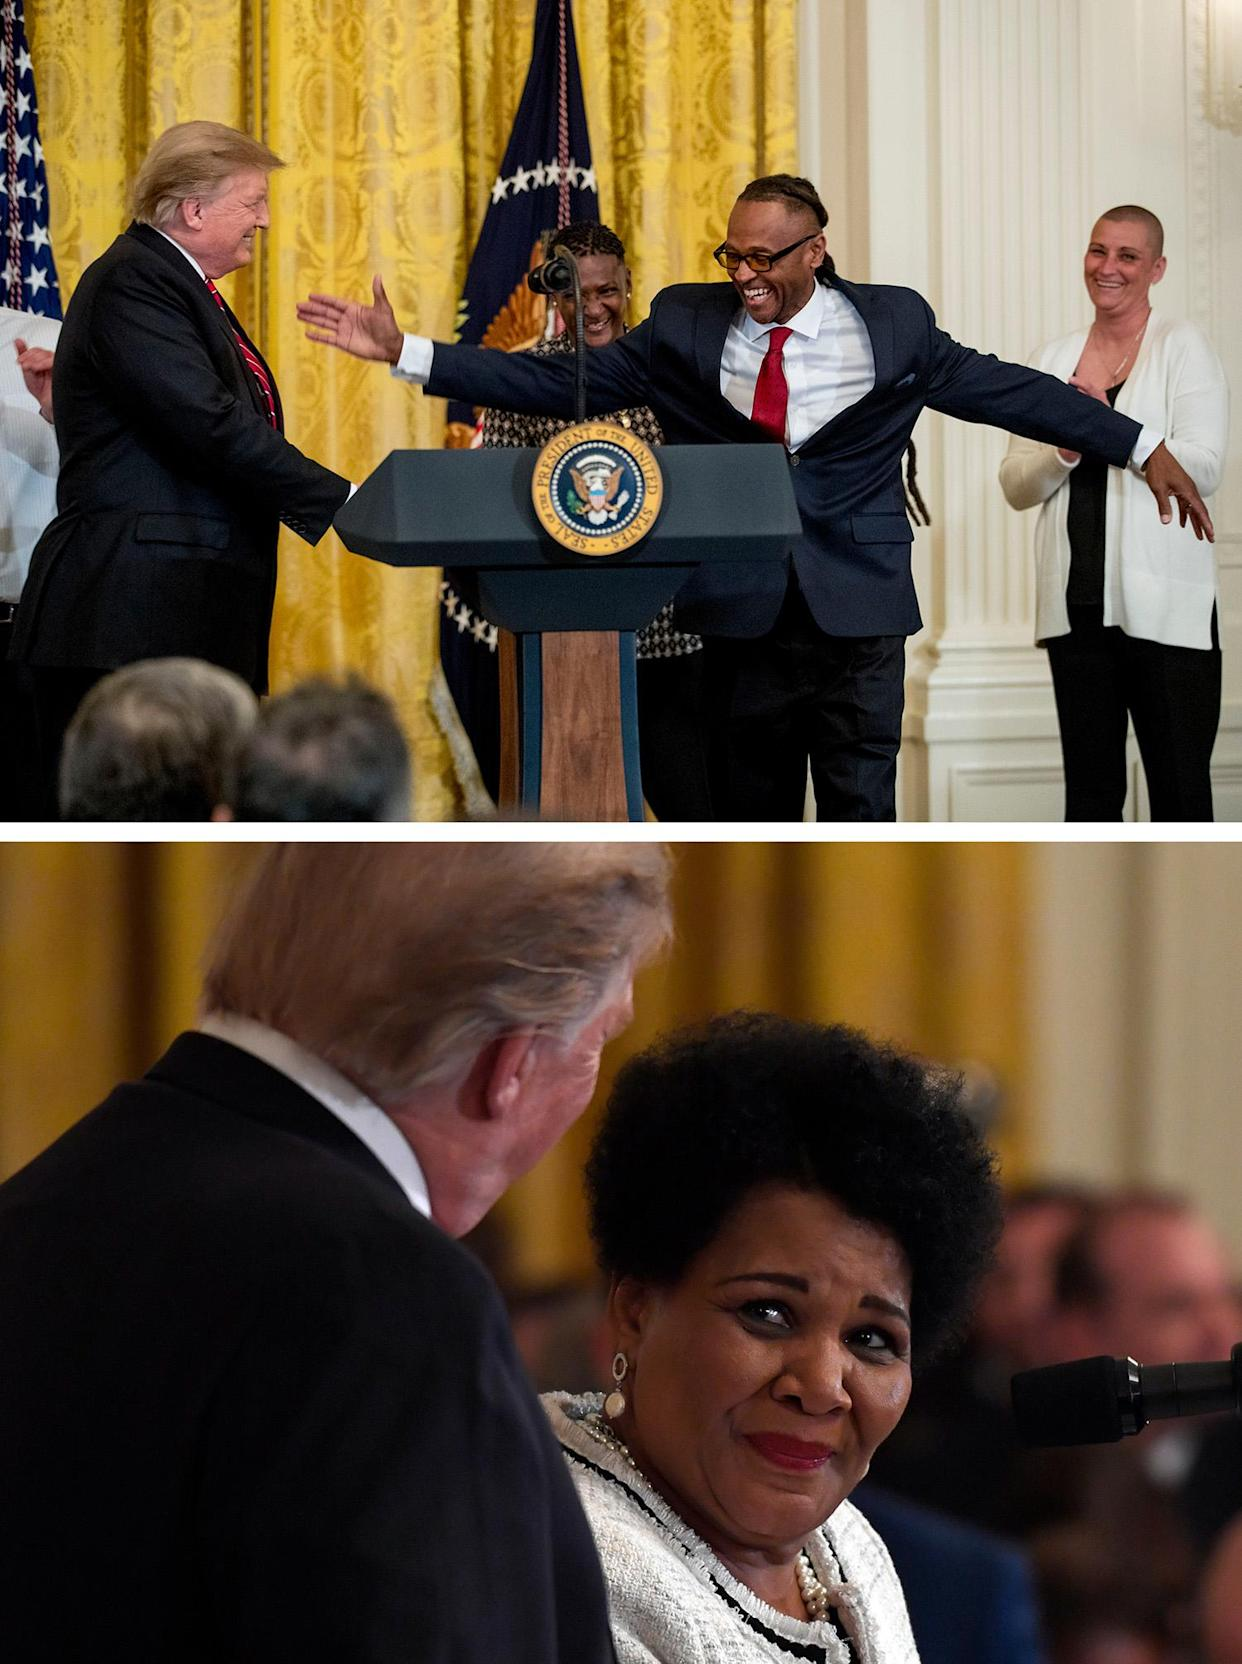 Gregory Allen, a First Step Act beneficiary, second from right, shakes hands with President Donald Trump, after speaking at the 2019 Prison Reform Summit and First Step Act Celebration in the East Room of the White House in Washington, Monday, April 1, 2019. (AP Photo/Andrew Harnik) President Donald Trump, left, listens as former prisoner Alice Johnson, right, speaks at the 2019 Prison Reform Summit and First Step Act Celebration in the East Room of the White House in Washington, Monday, April 1, 2019. (AP Photo/Susan Walsh)